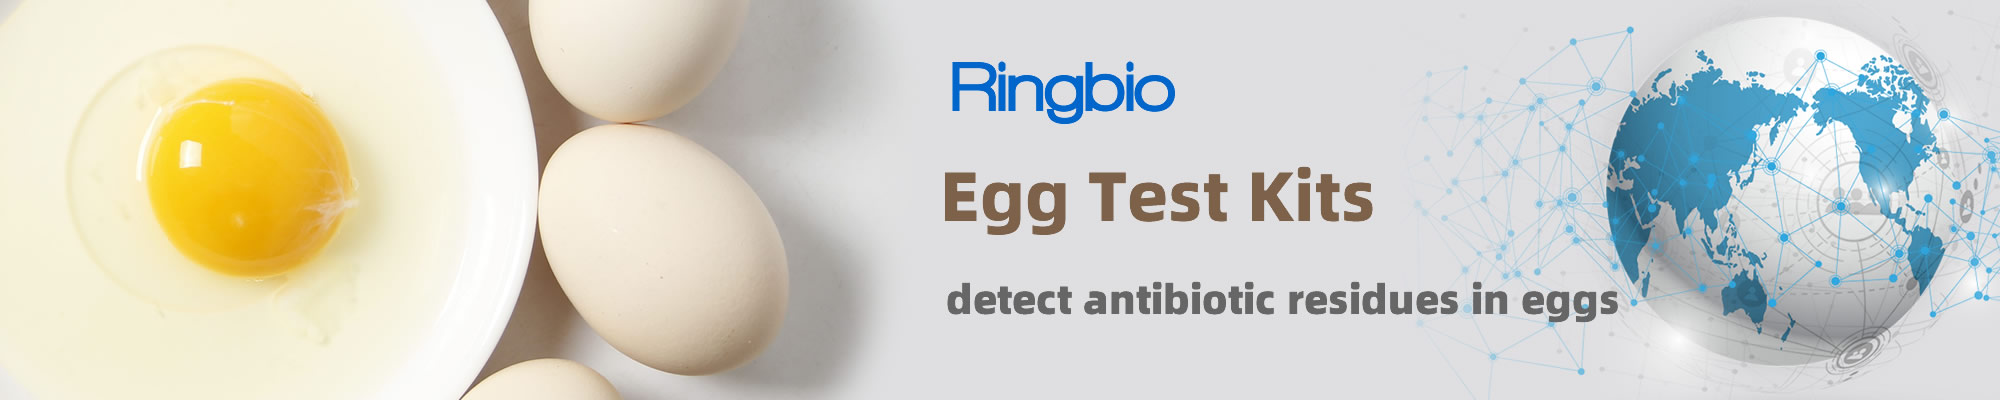 Rapid Test Kits to detect antibiotics in Eggs in 10min with simple dilution